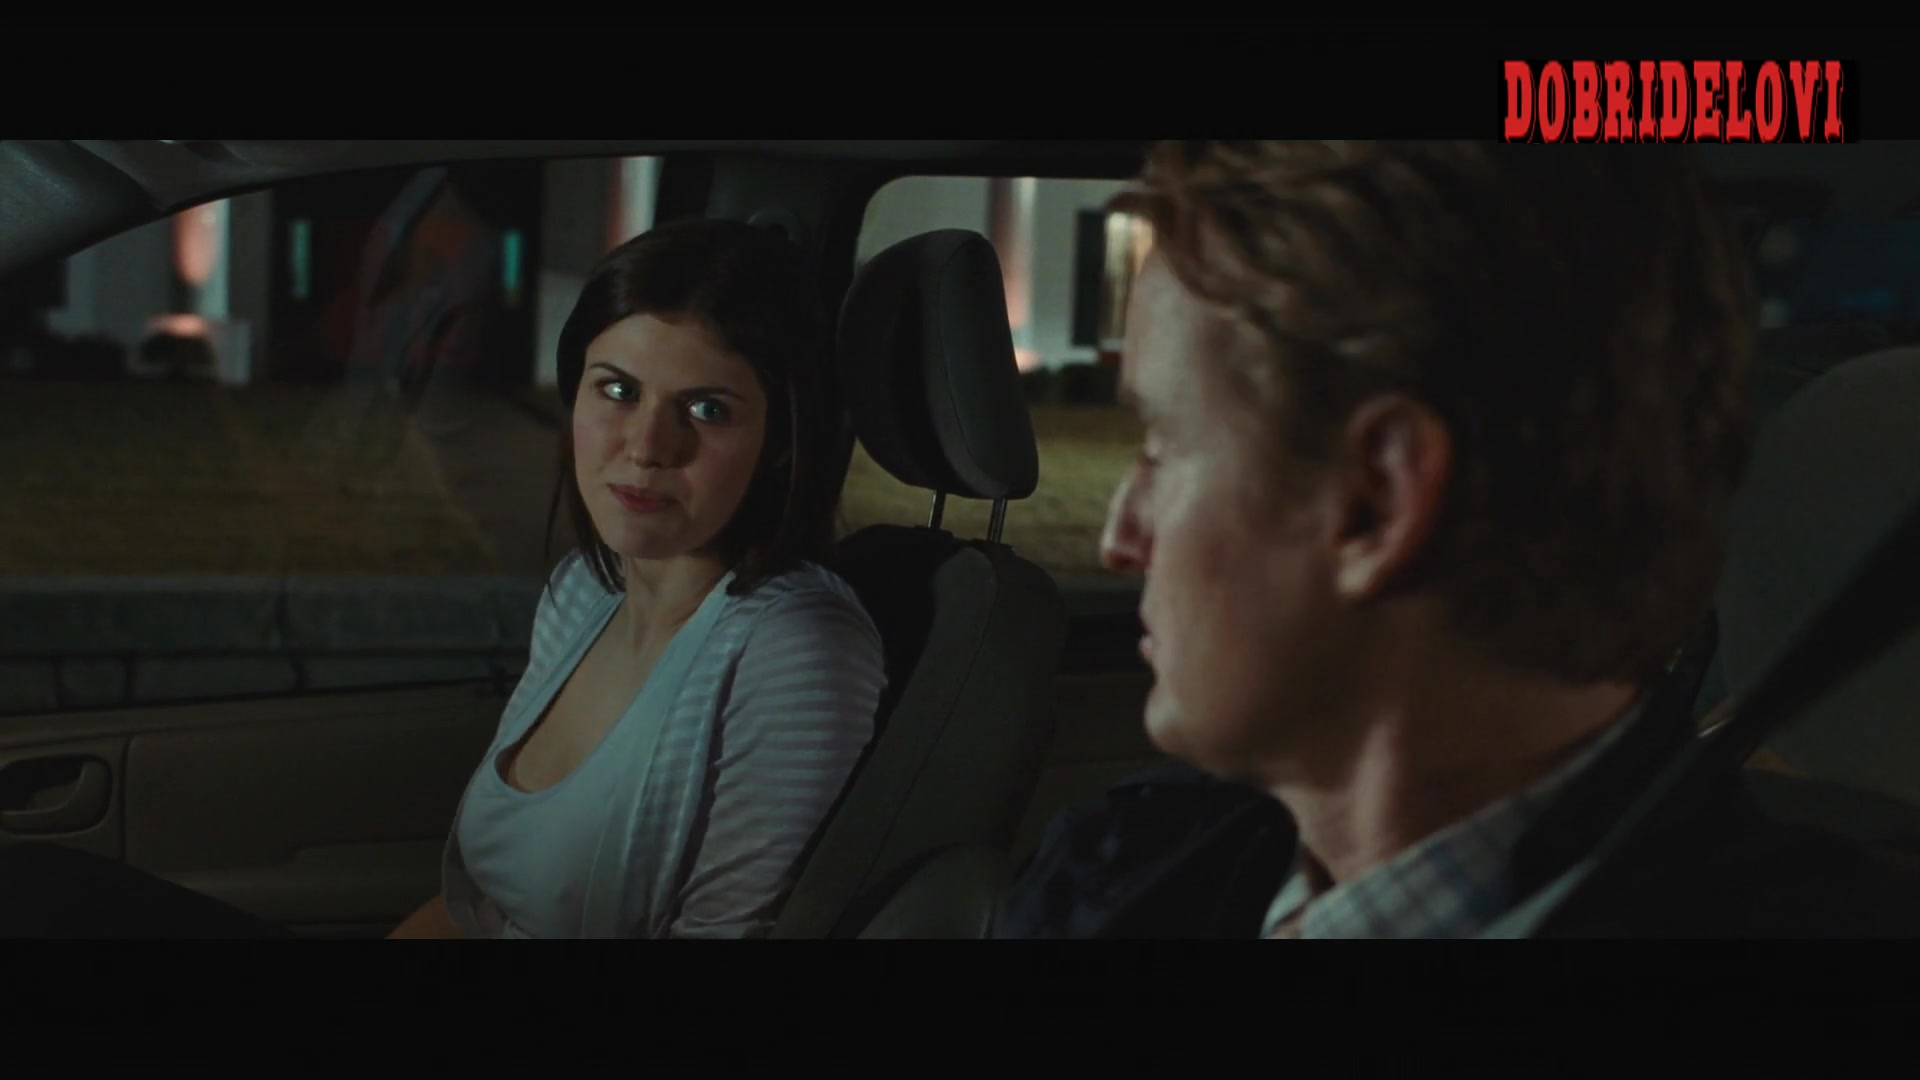 Alexandra Daddario tries to seduce Owen Wilson to get some beer